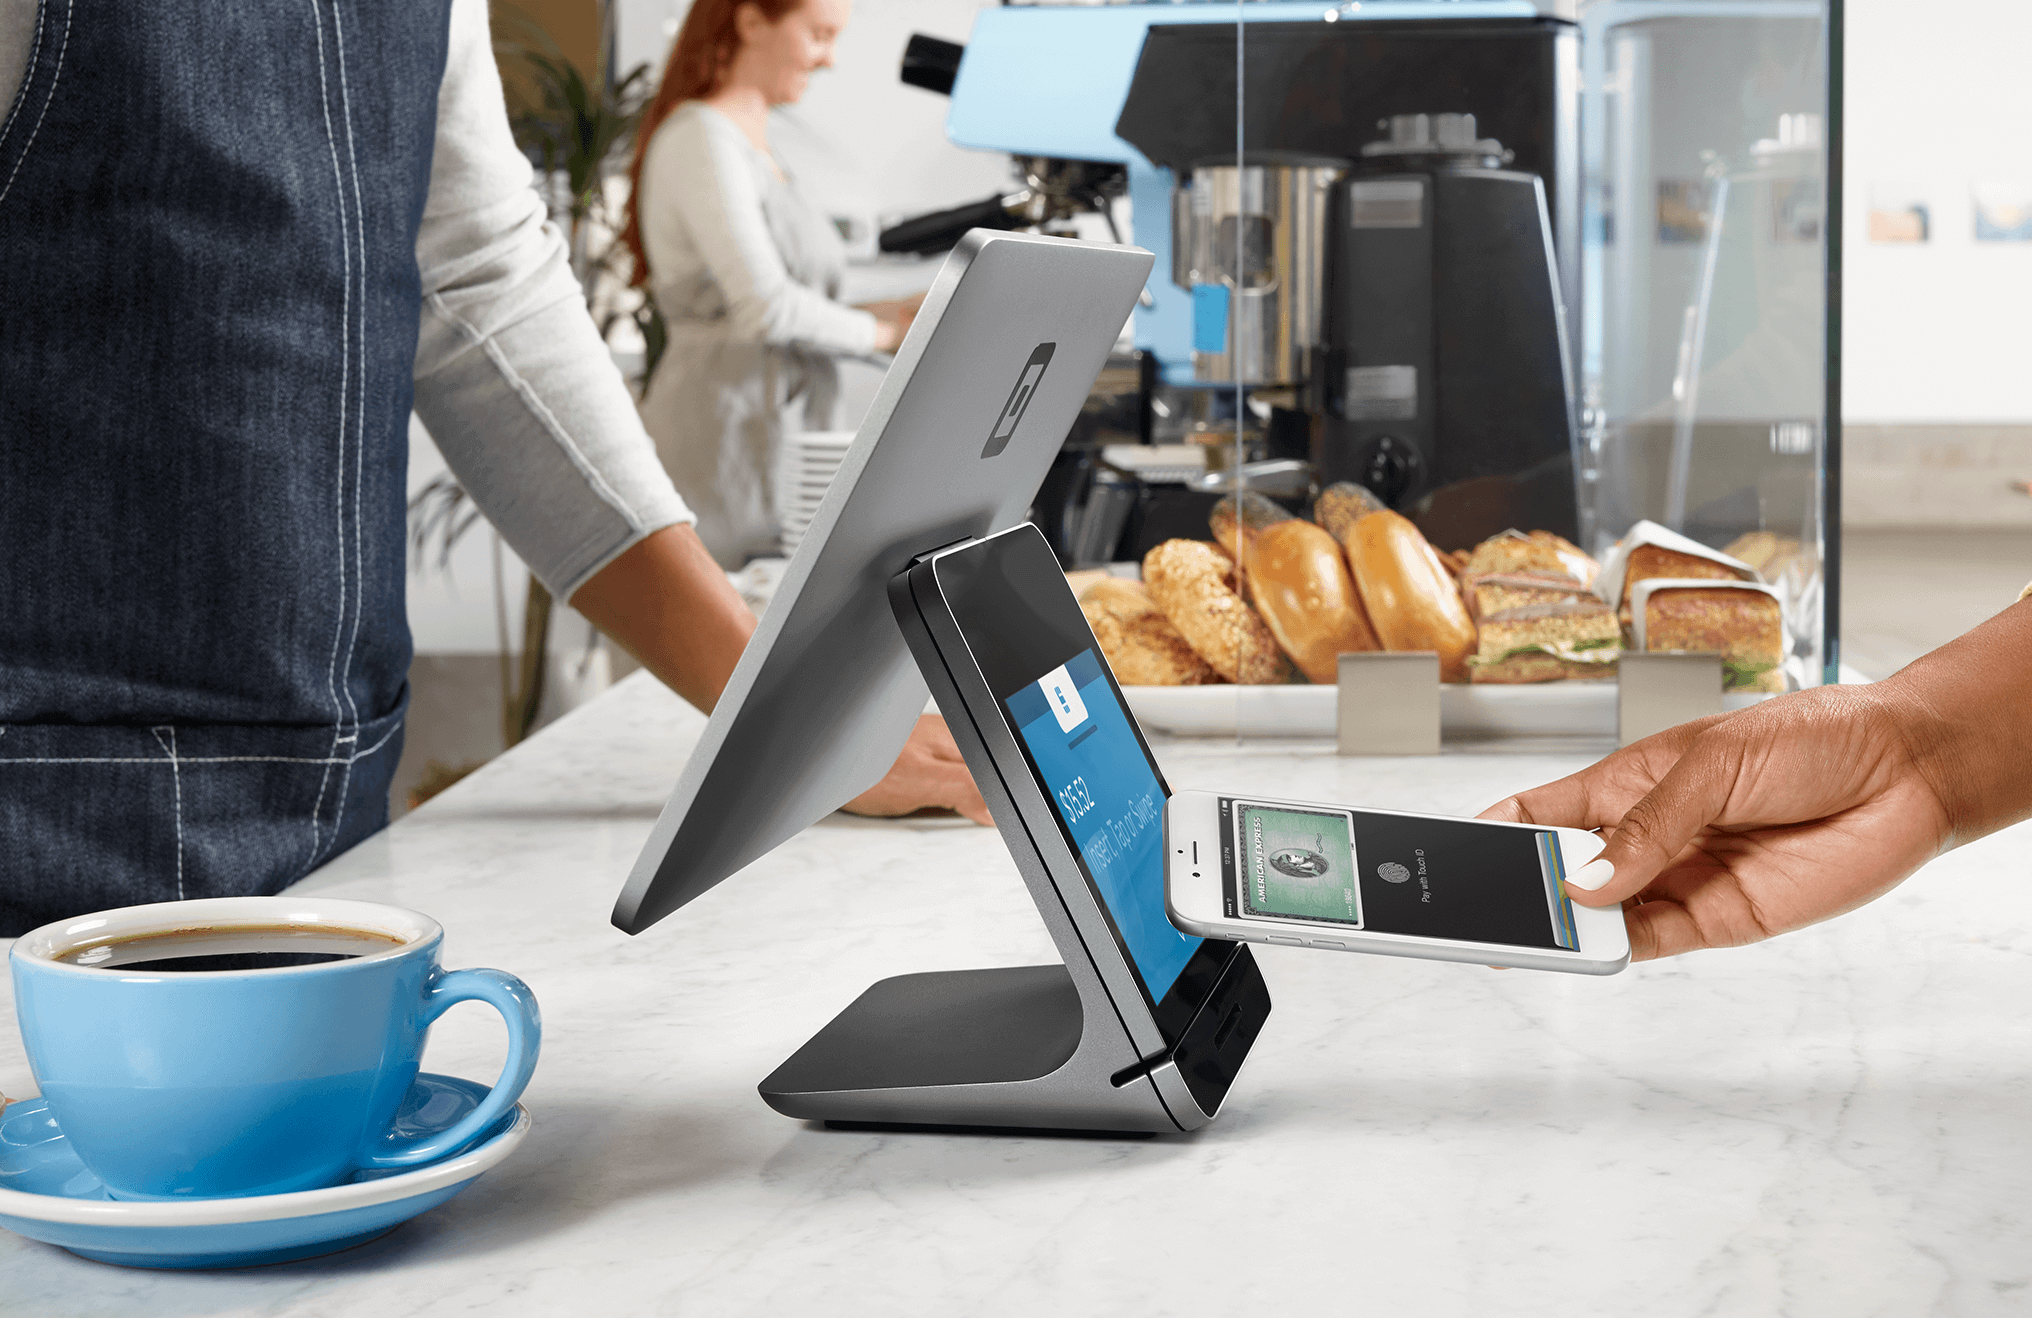 Square says half of its Cash app quarterly revenue came from bitcoin transactions